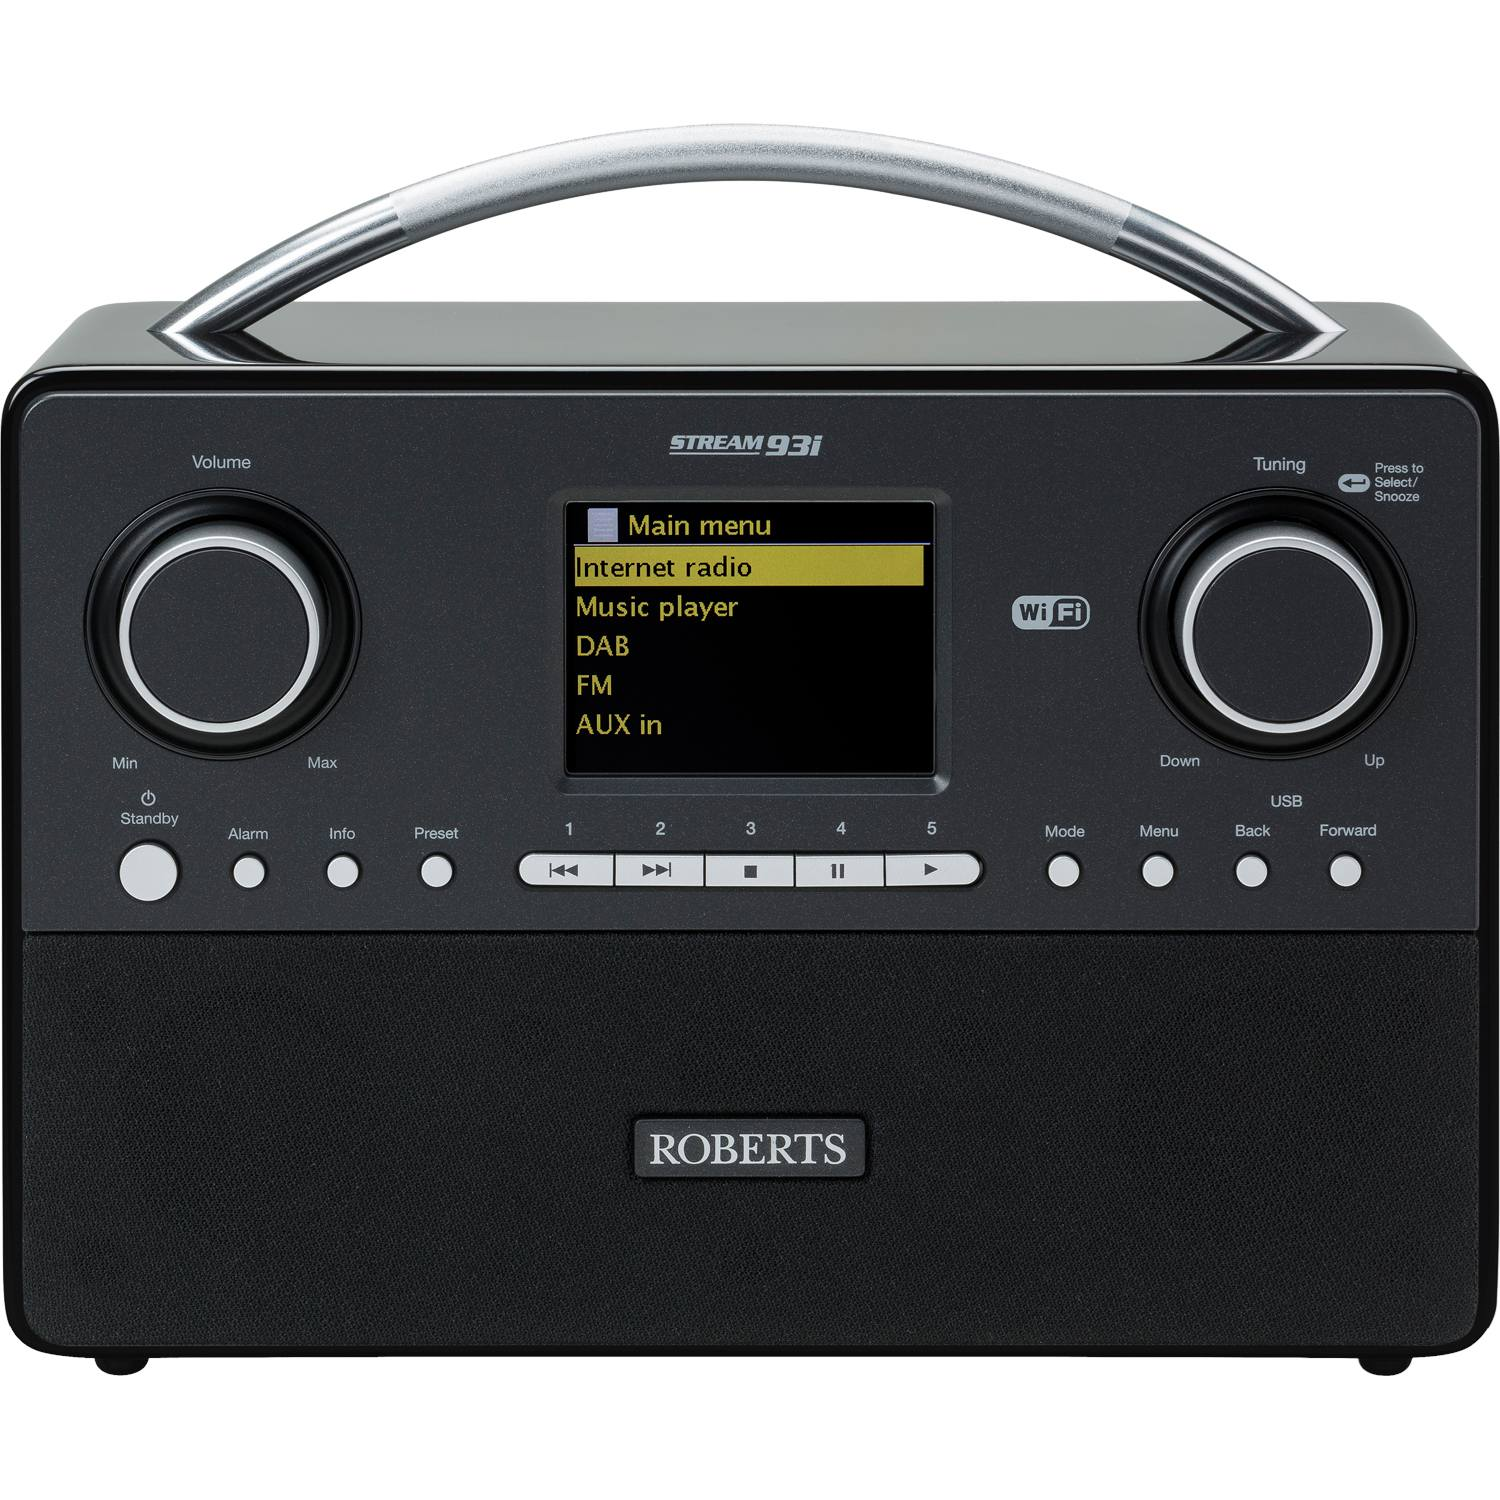 roberts stream 93i portable dab fm internet radio with wifi alarm usb black 5038301303211 ebay. Black Bedroom Furniture Sets. Home Design Ideas